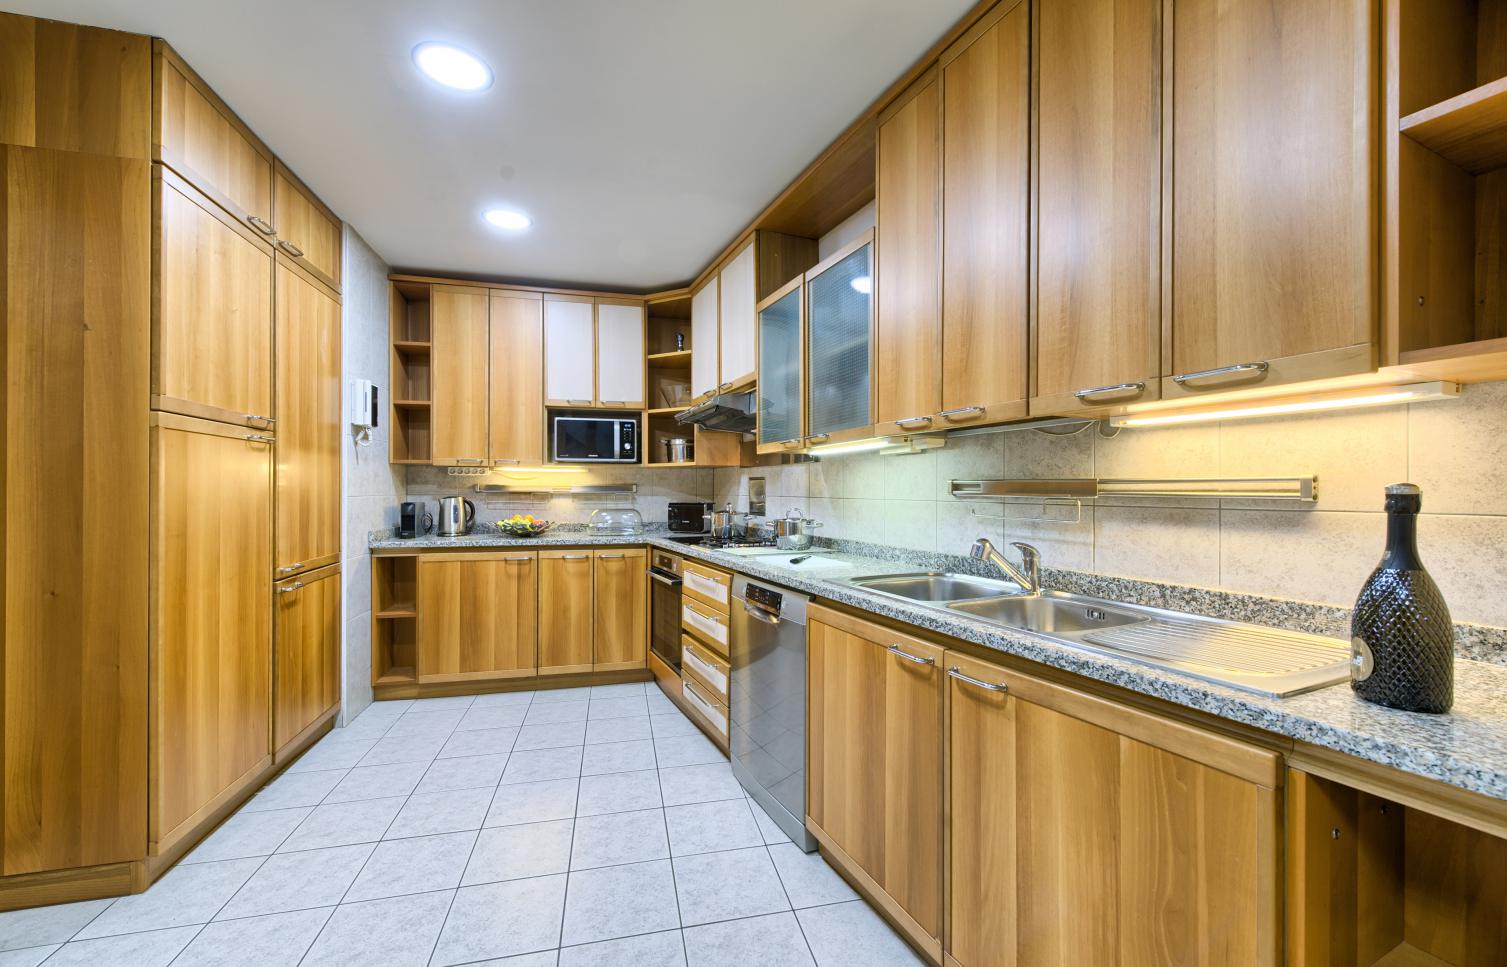 APARTMENT FOR RENT, street 17. listopadu, Praha 1